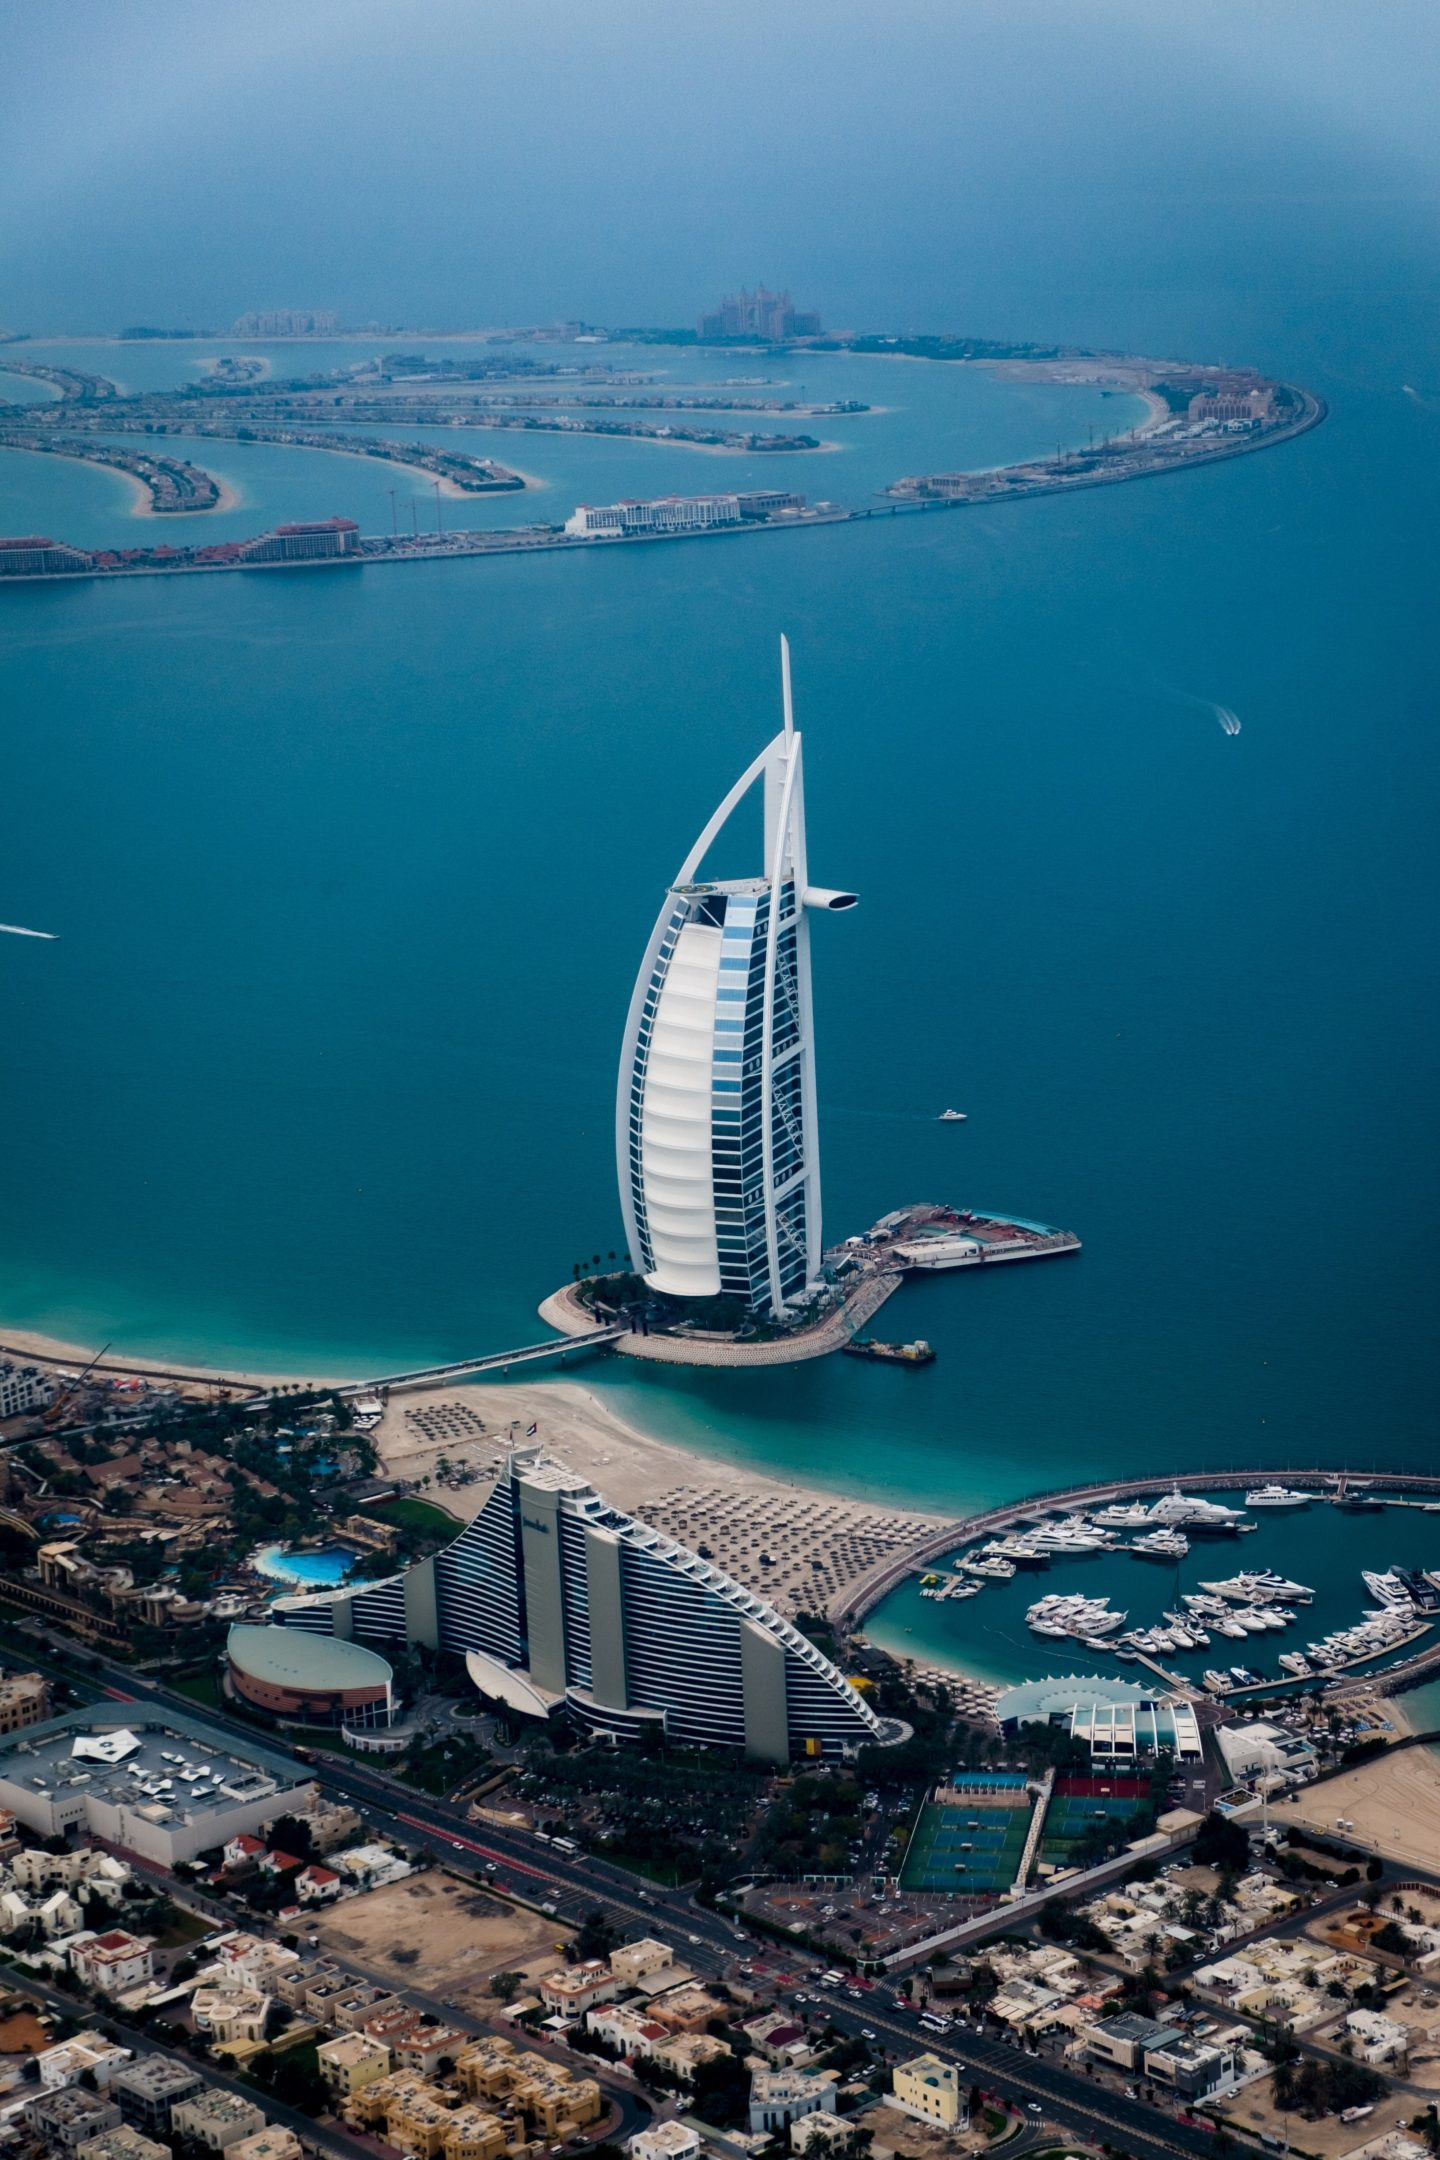 View of the Burj al Arab with the Palm Jumeirah in the background